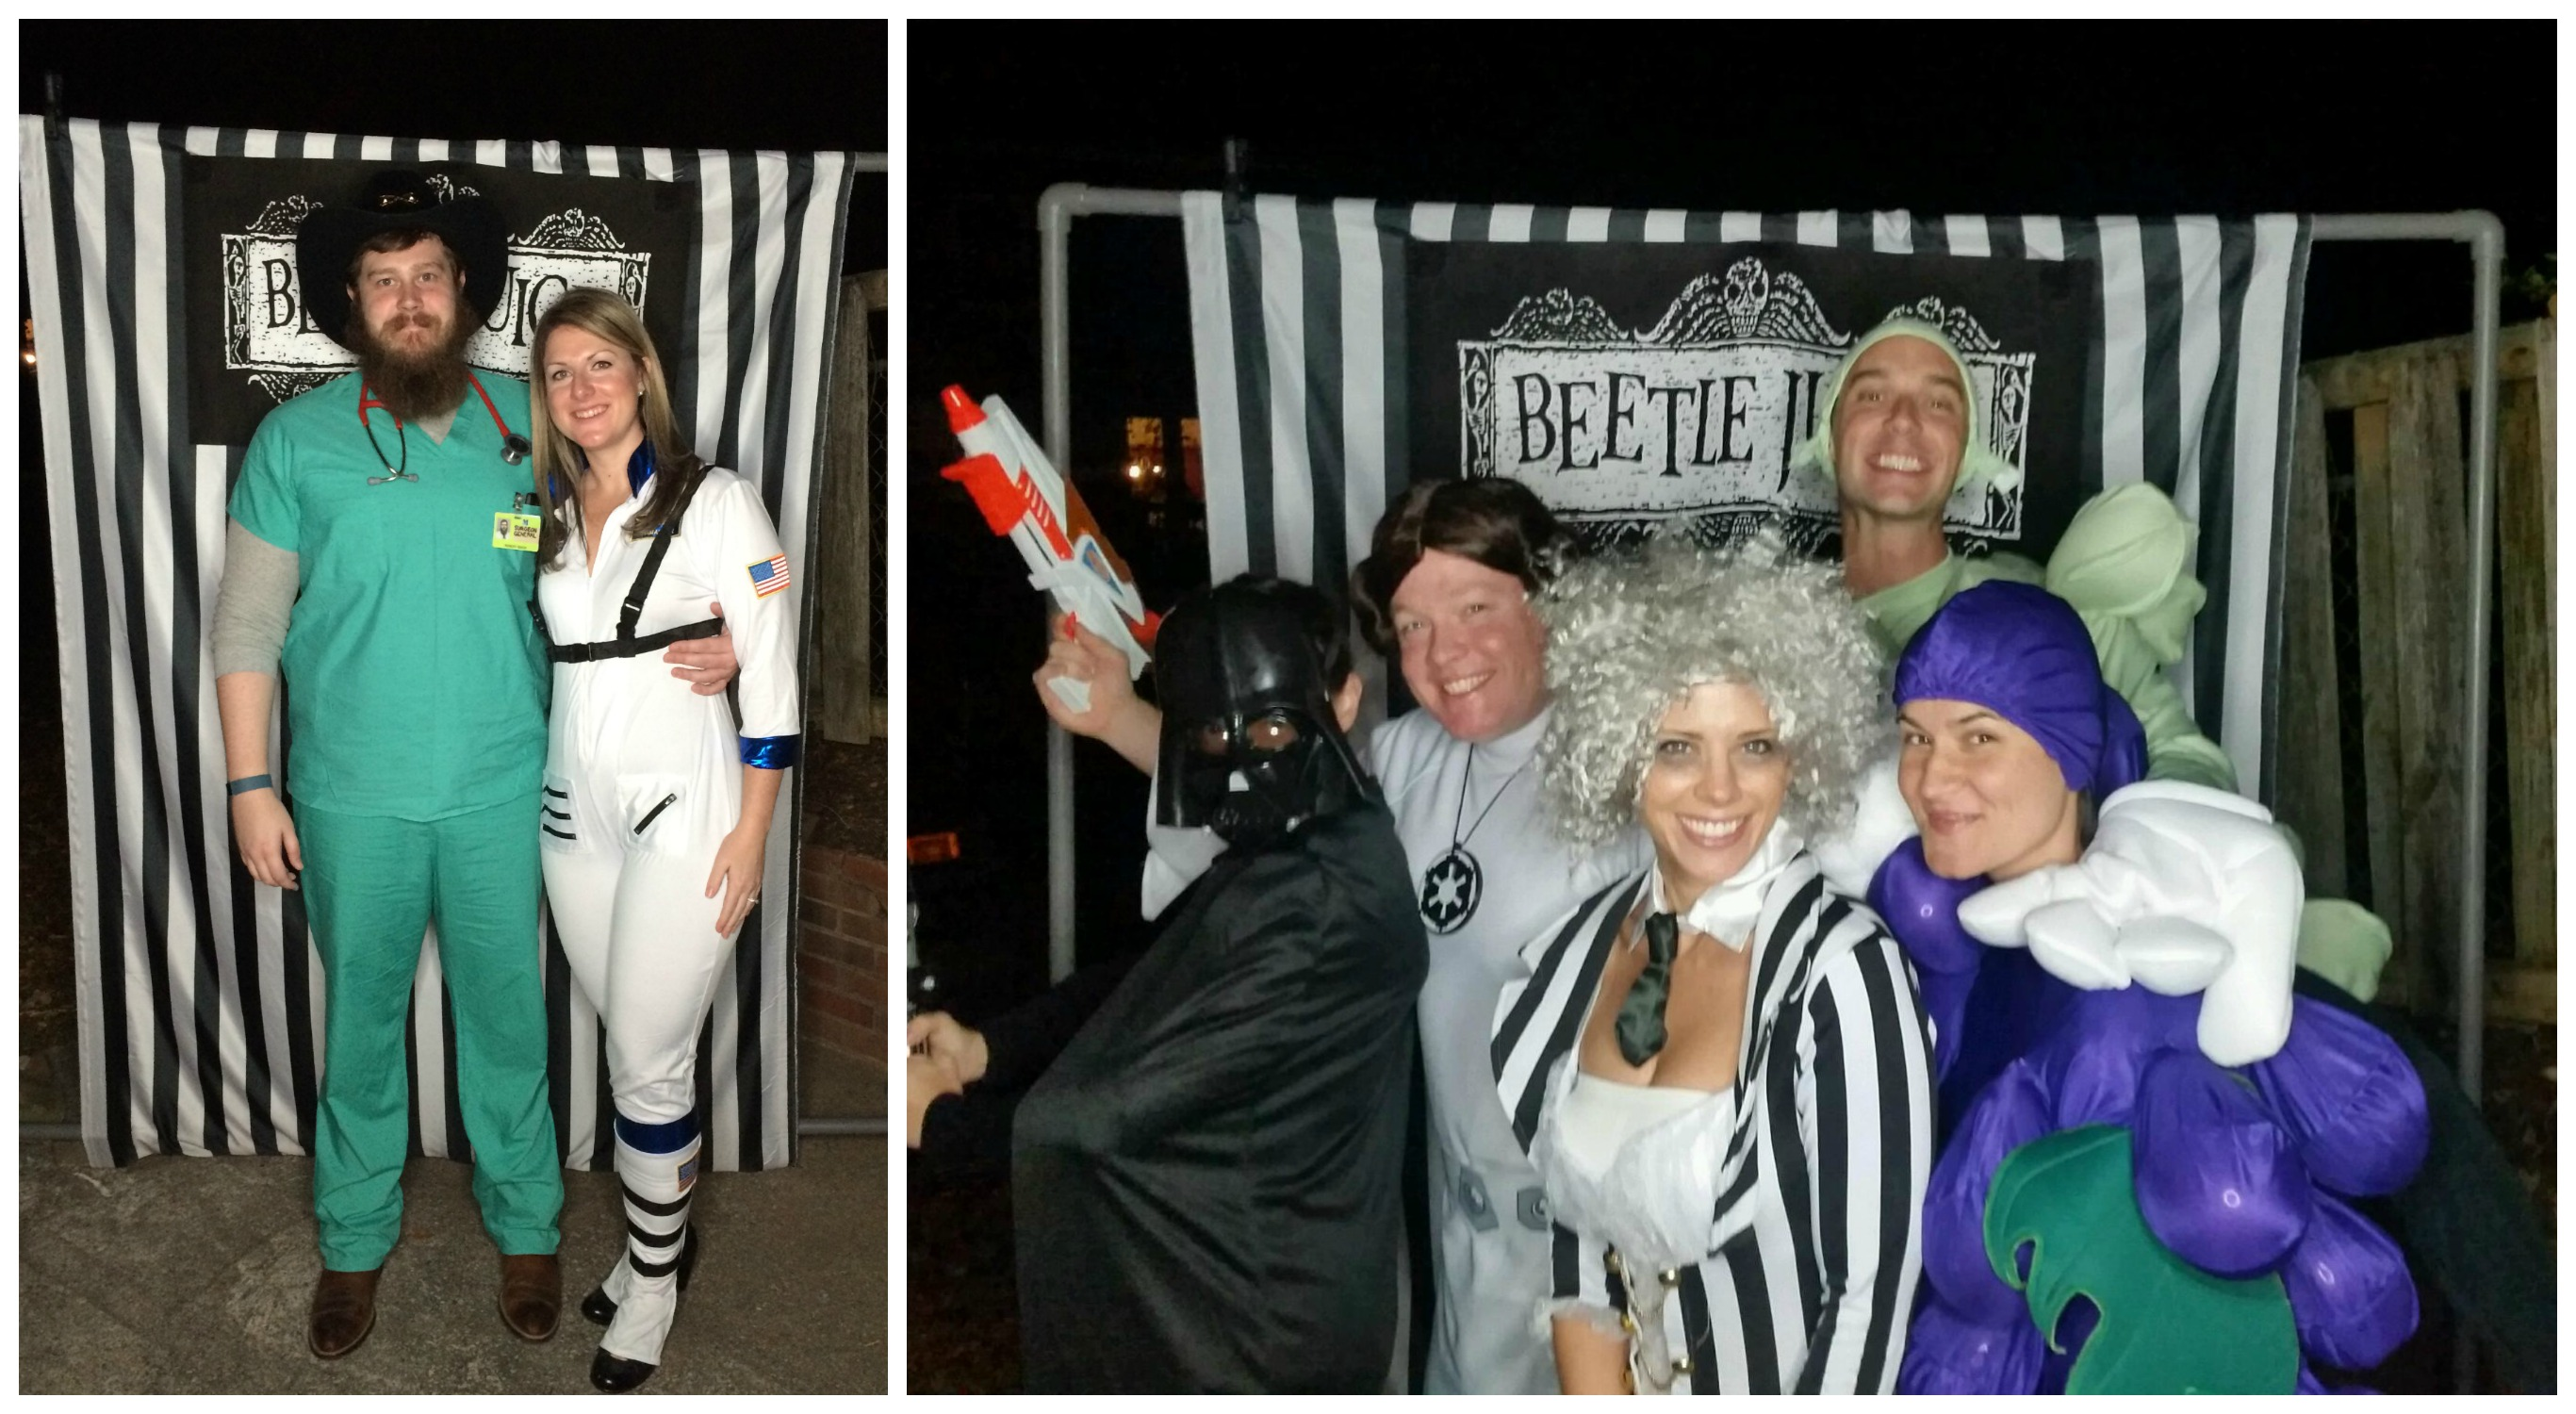 Beetlejuice Halloween Party - Guest Collage 2